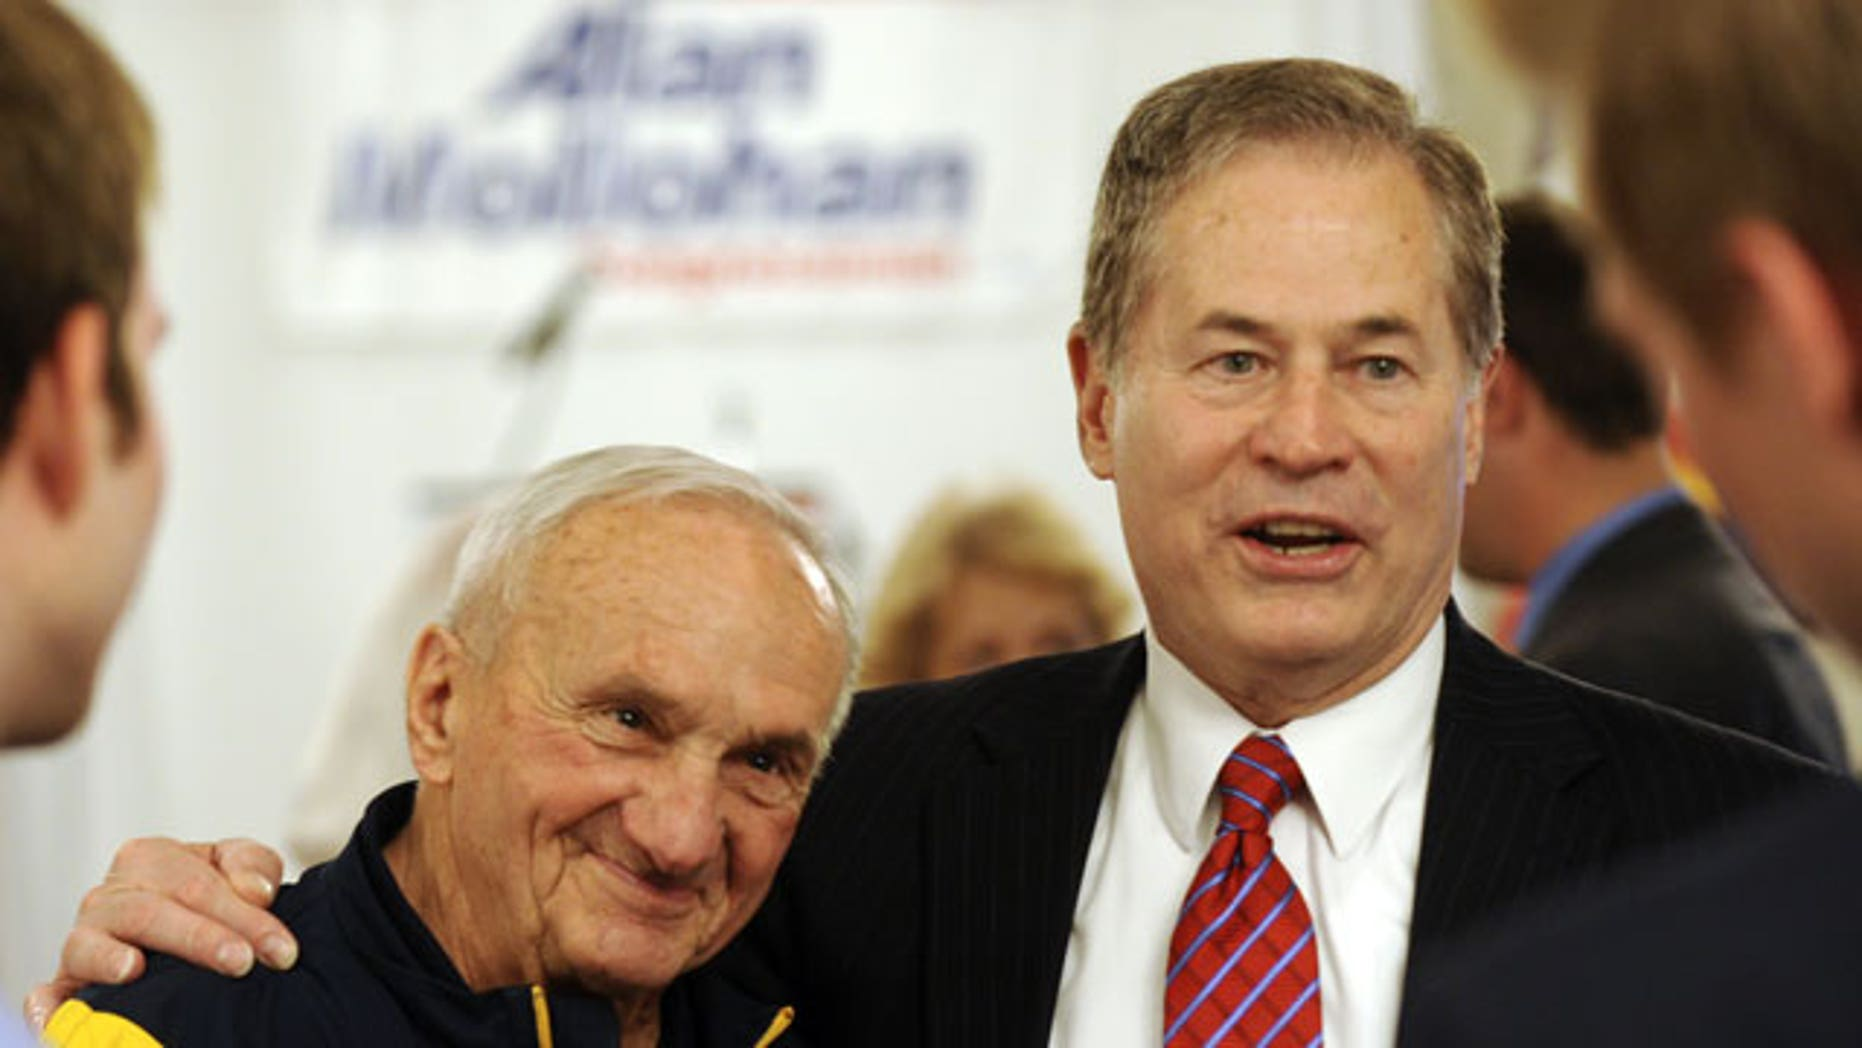 """May 11: West Virginia 2nd Congressional District Congressman Alan Mollohan, right, gives a hug to long-time supporter John """"Sheriff"""" Tiano, inside Mollohan's campaign headquarters in Morgantown, W.Va."""